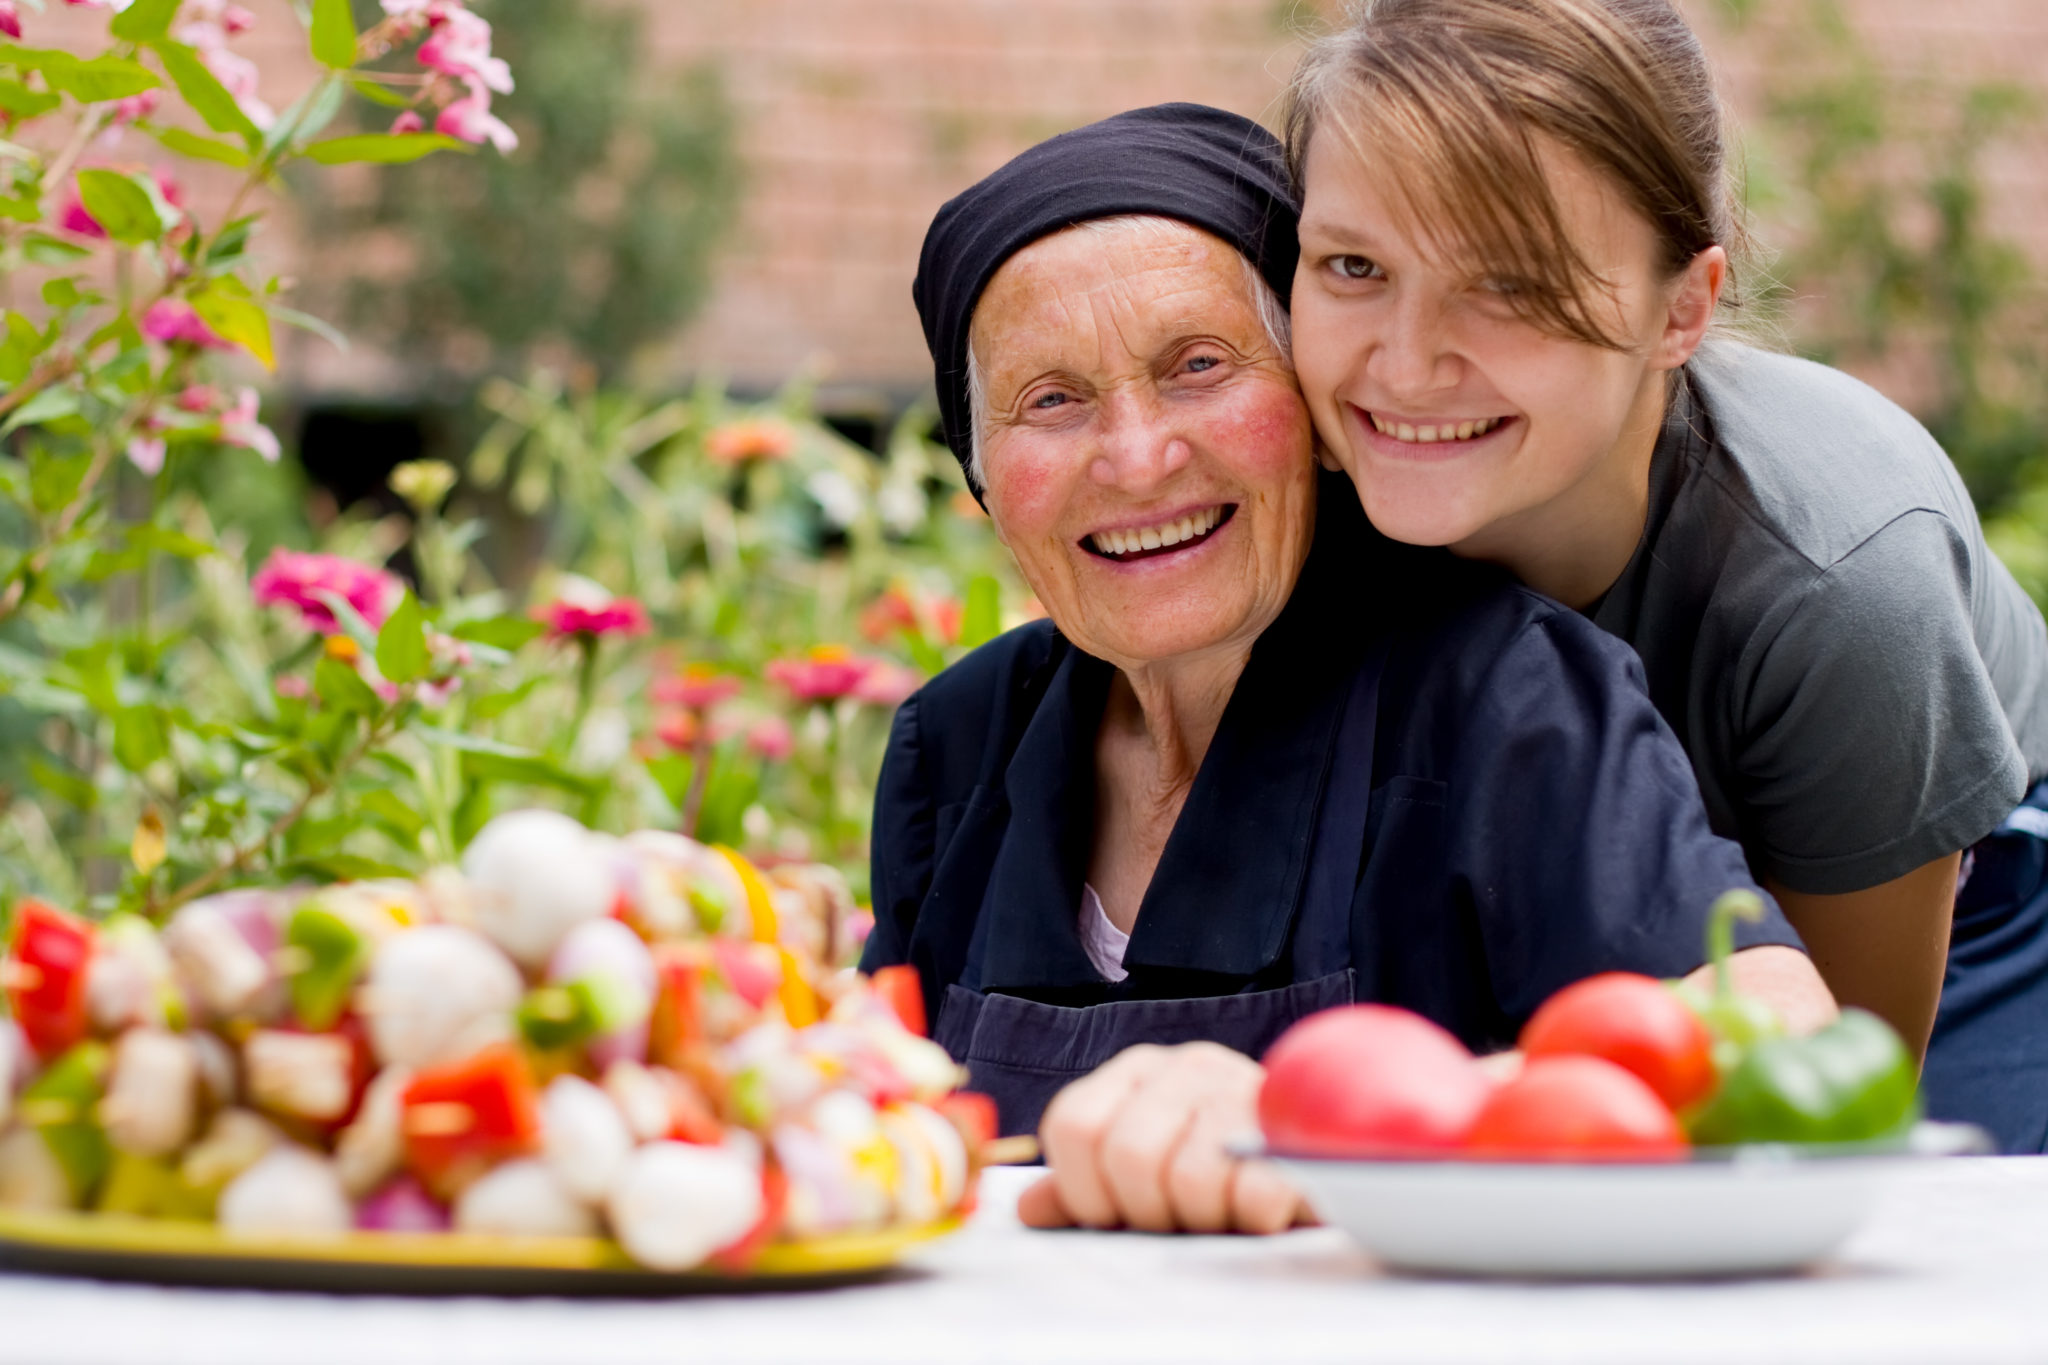 Caregiver in Wasilla AK: Privacy For Seniors And Caregivers